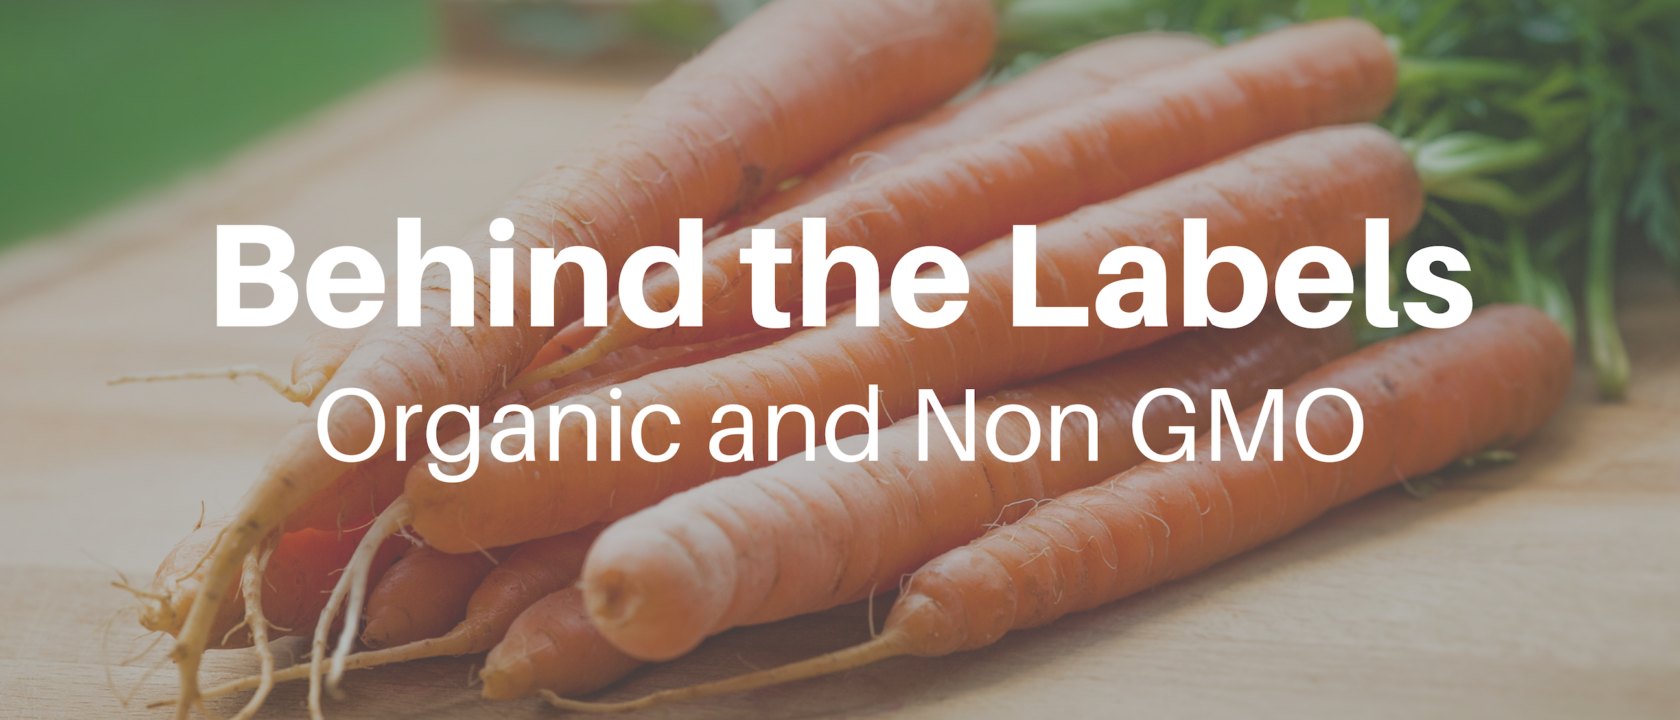 Behind the Labels: Organic and Non-GMO Food